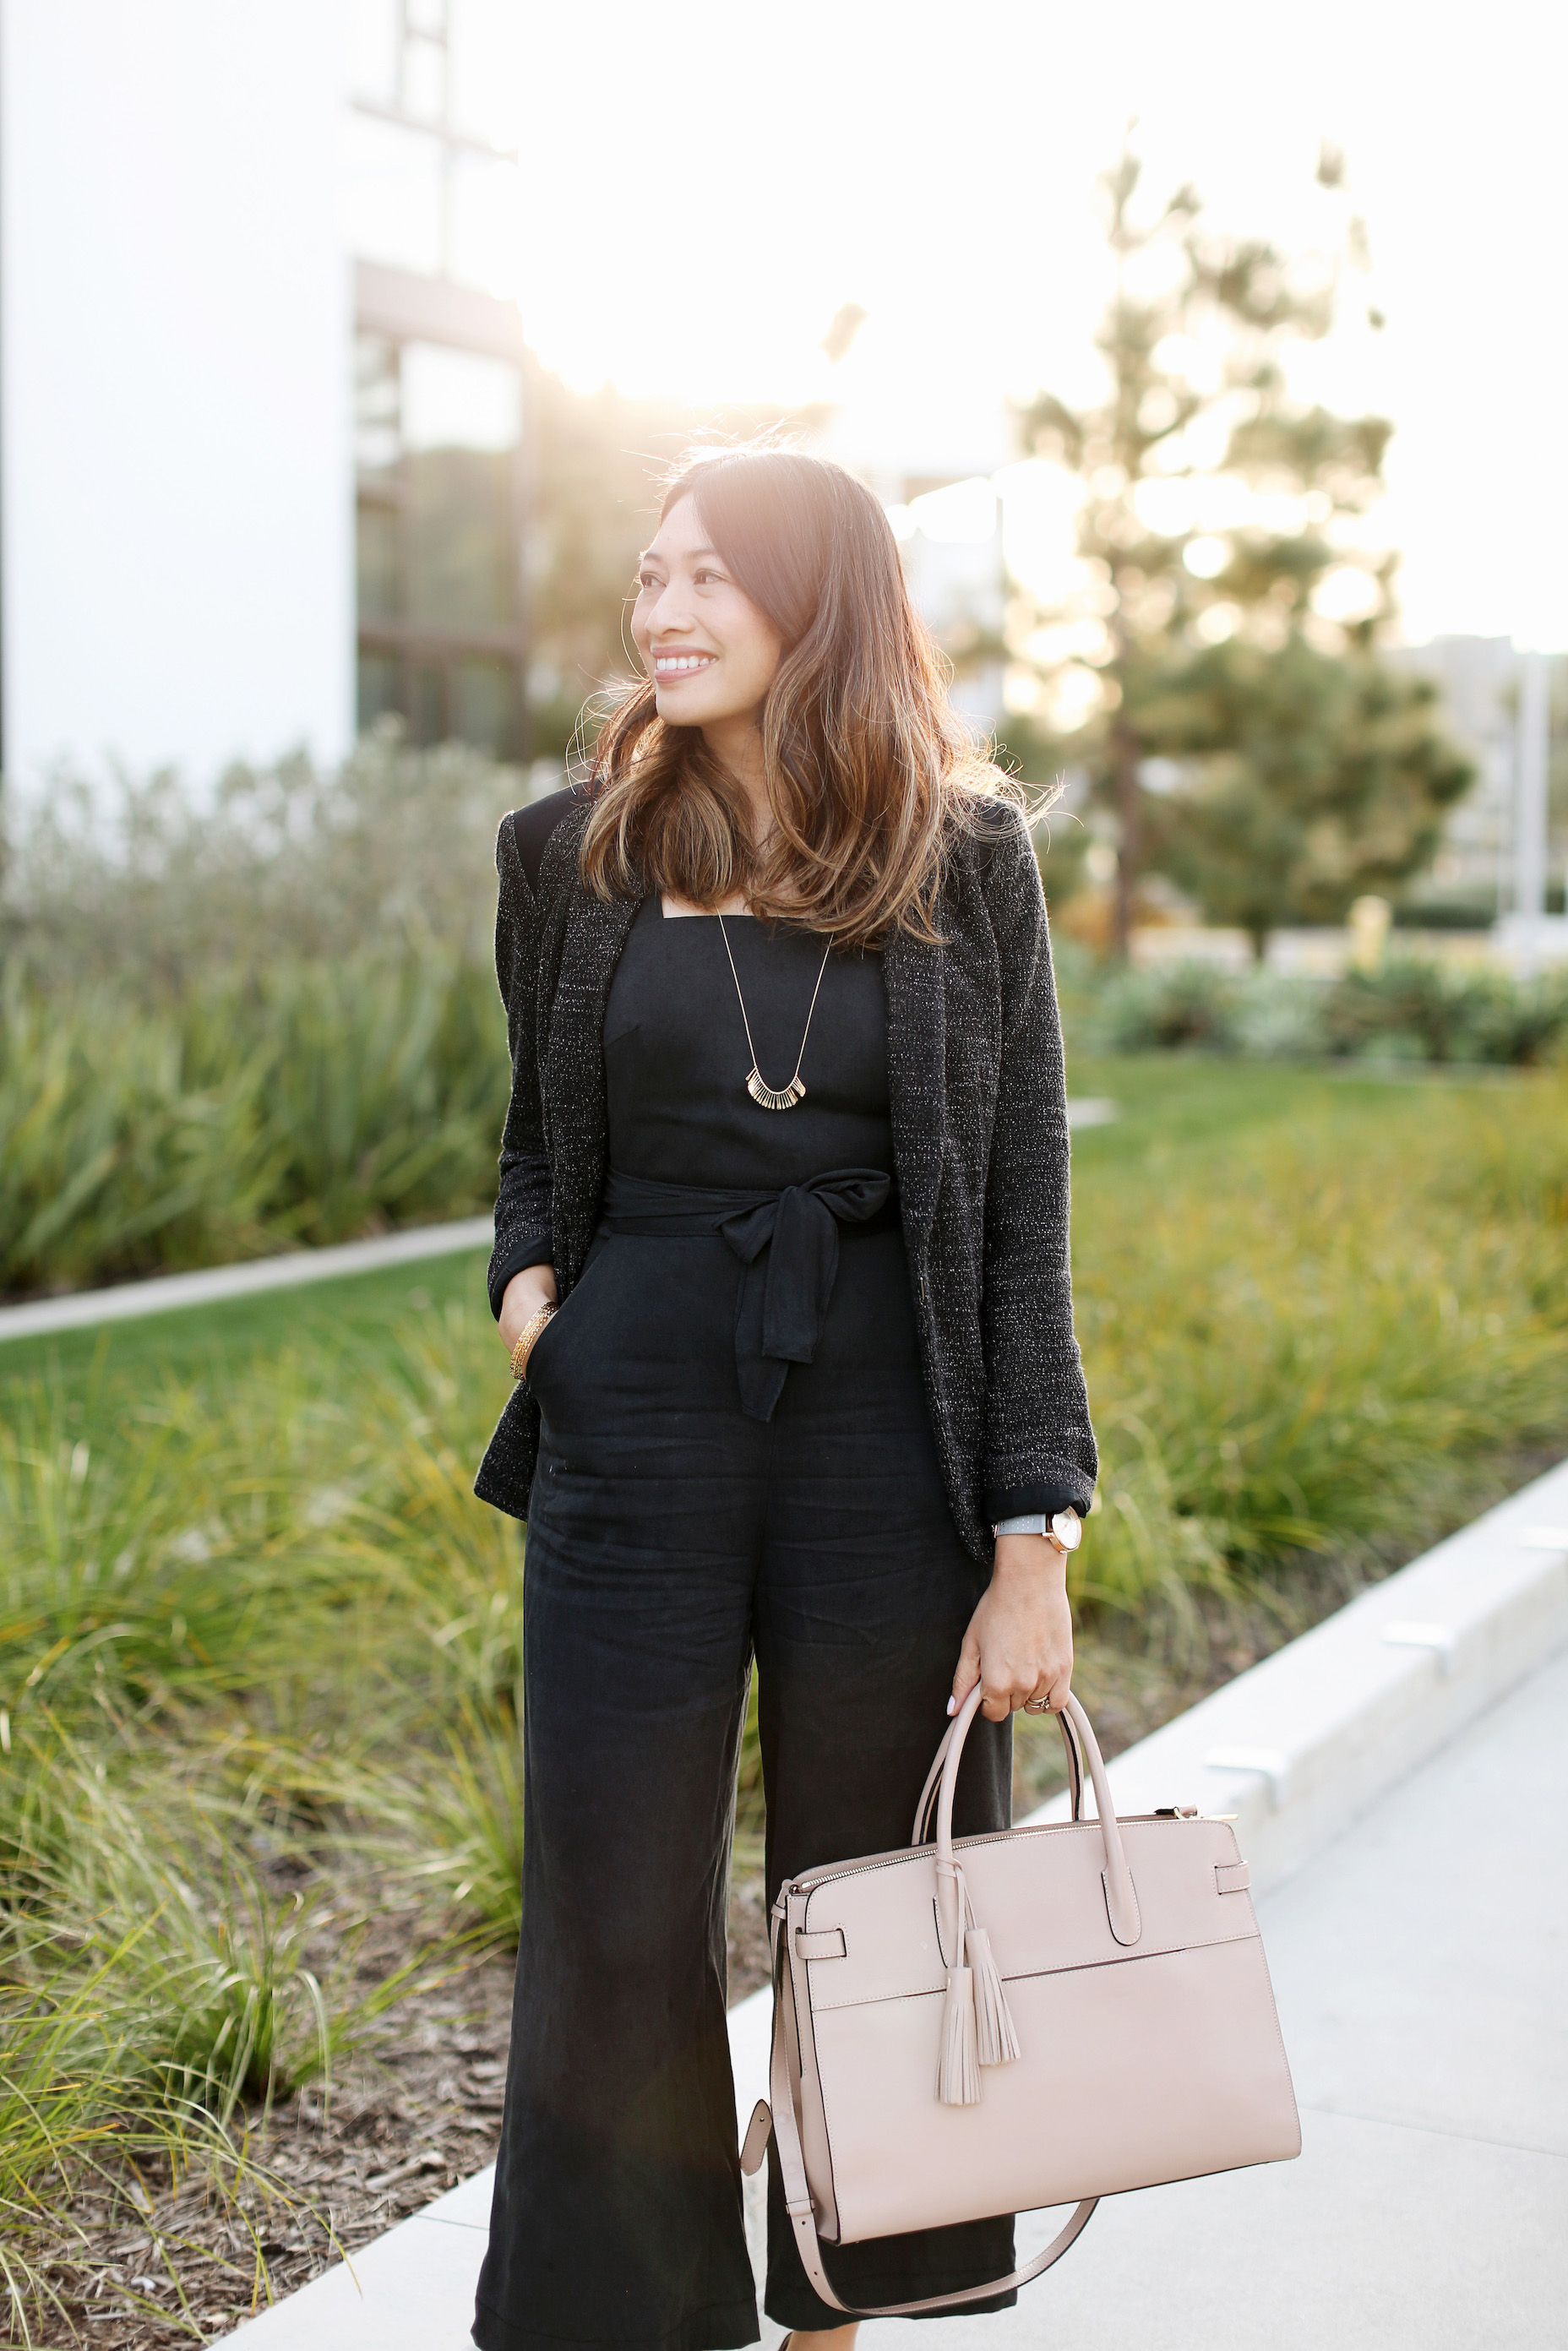 Work outfit idea | A Week Of Polished & Professional Outfits With Sustainable Lifestyle Blogger Jonilyn Brown on The Good Trade